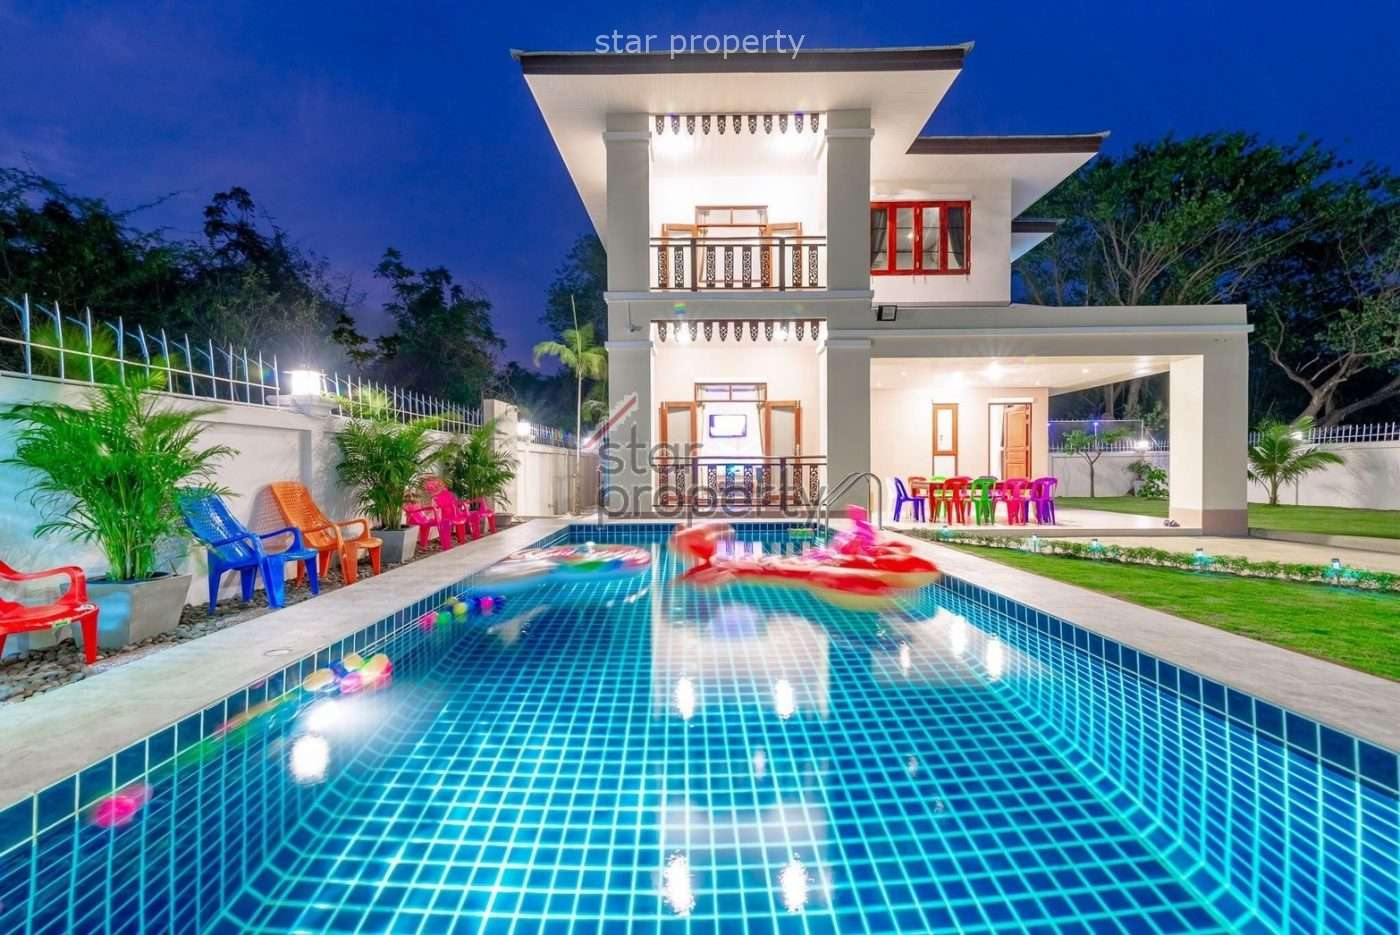 Stunning 2 Storey-House in north of Hua Hin for Sale at near Hua Hin Hospital